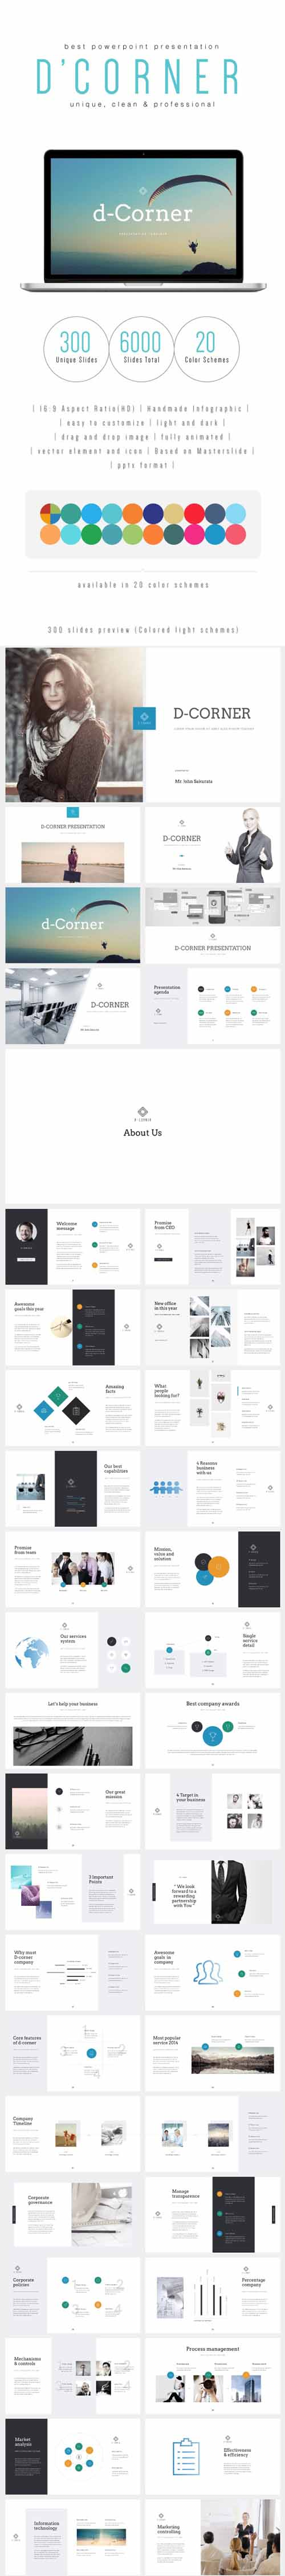 GR - D-CORNER - Multipurpose PowerPoint Template (V.34) 19237080